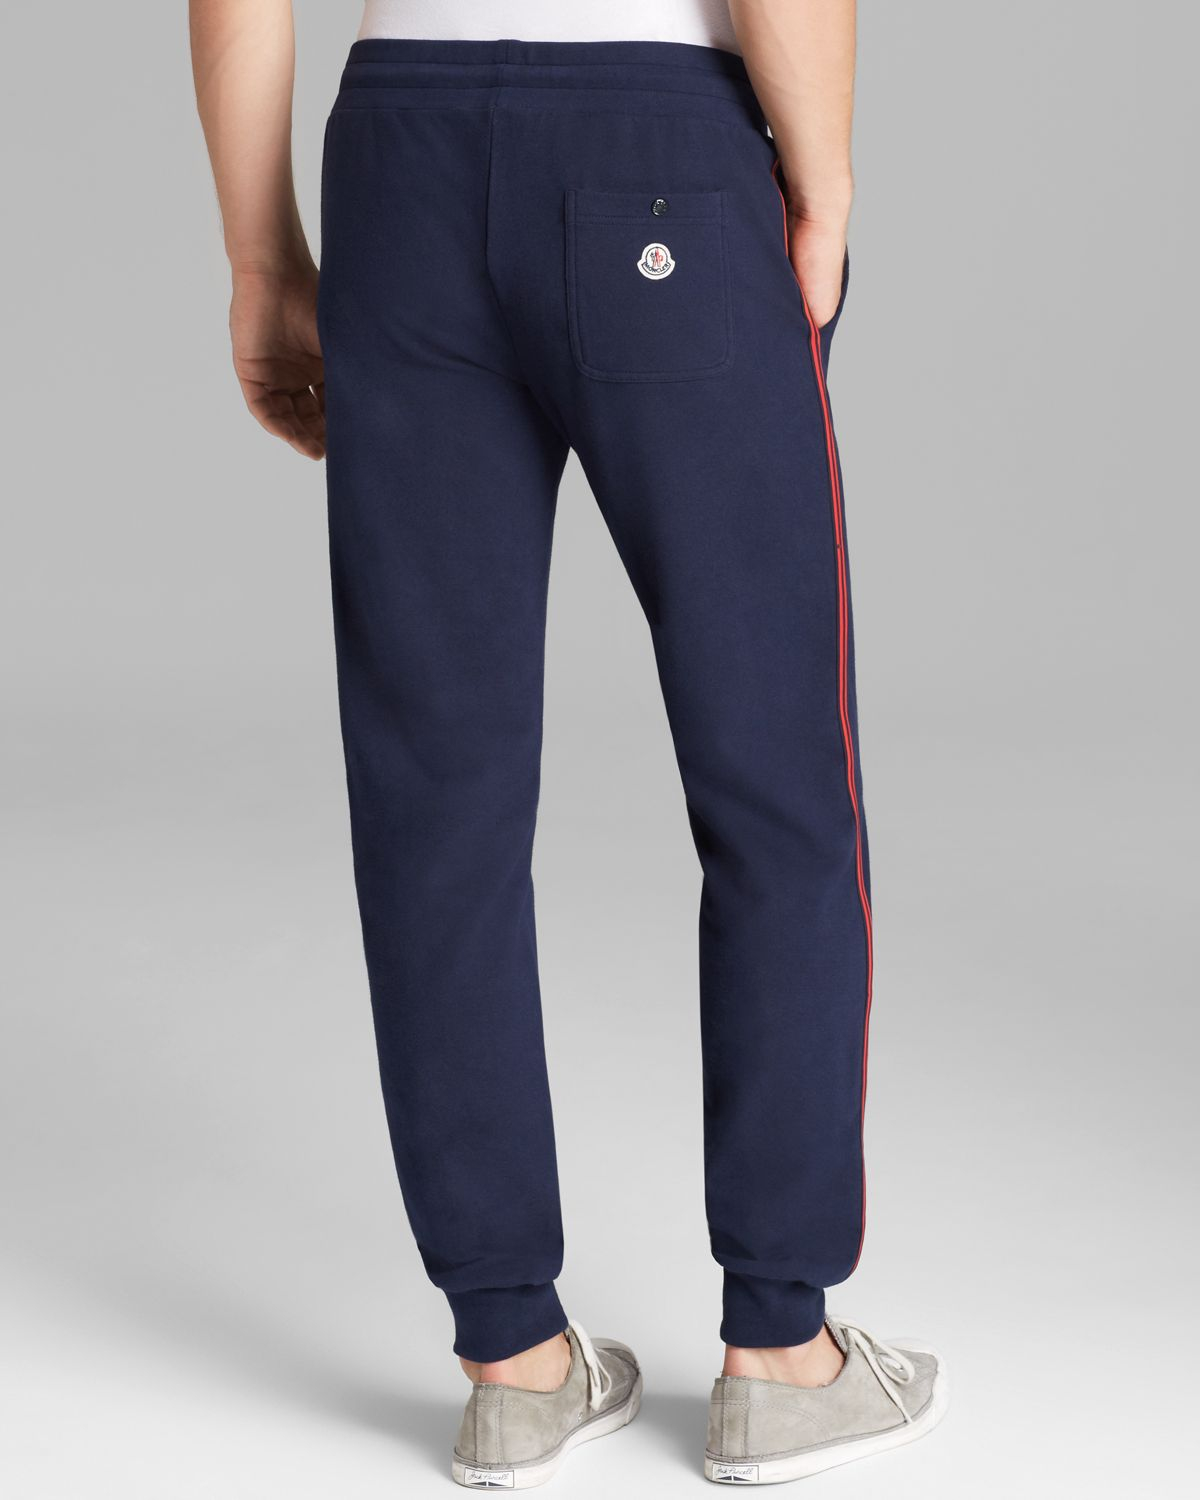 moncler sweatpants